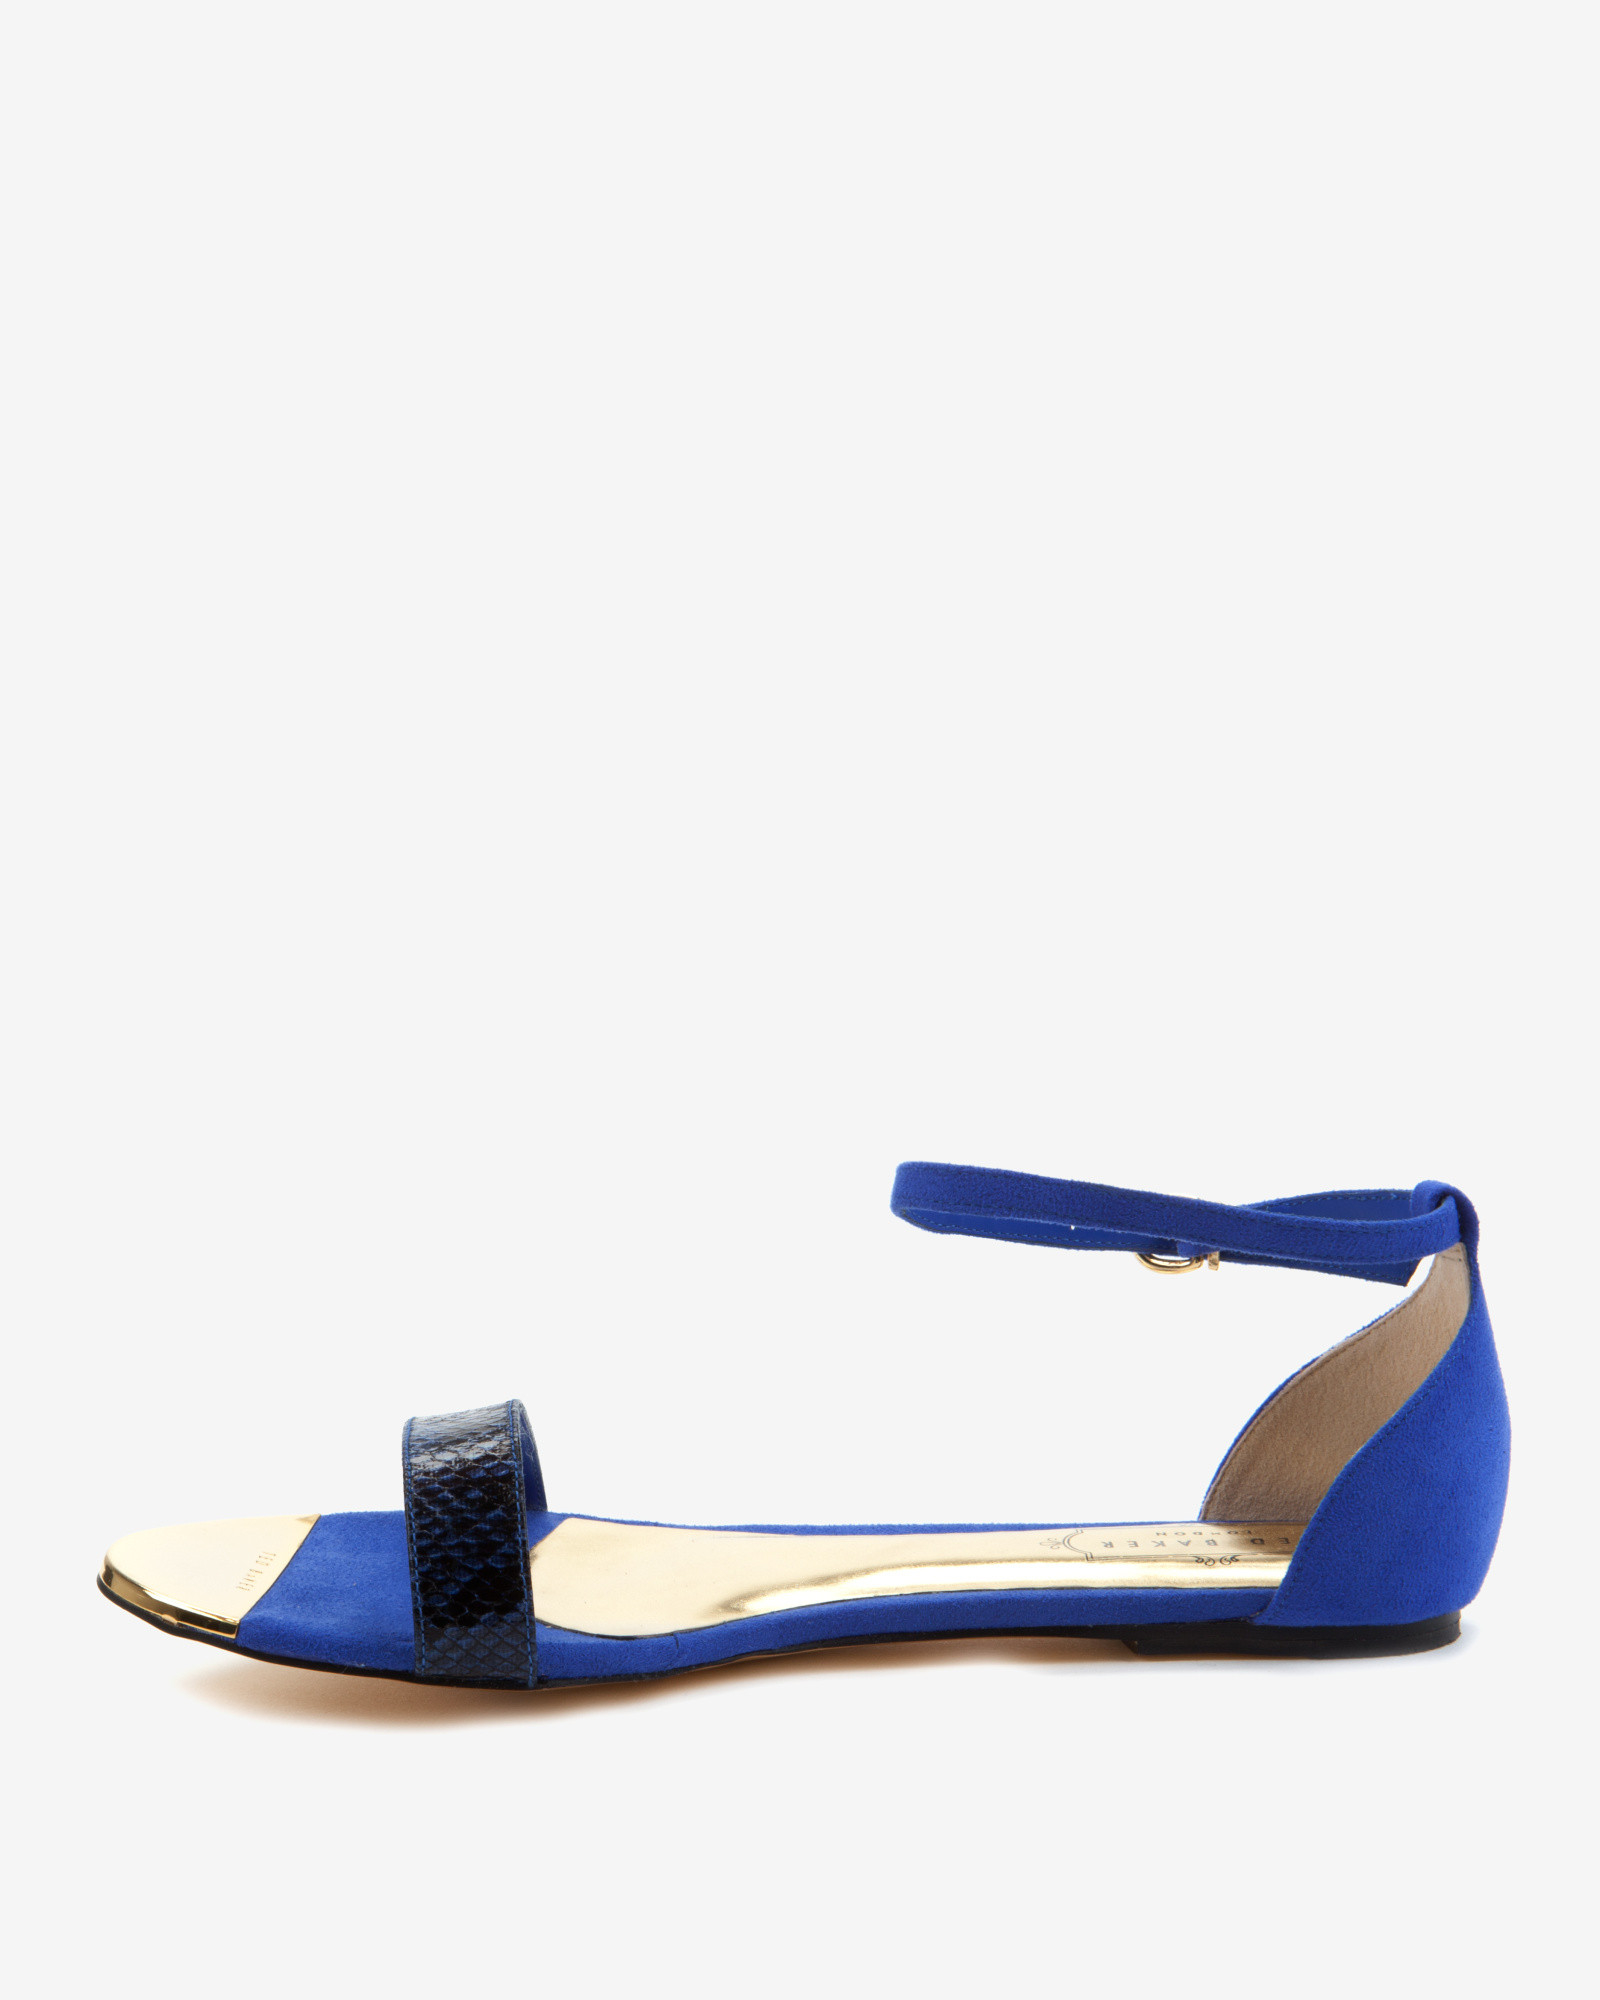 Lyst - Ted Baker Ankle Strap Sandals in Blue